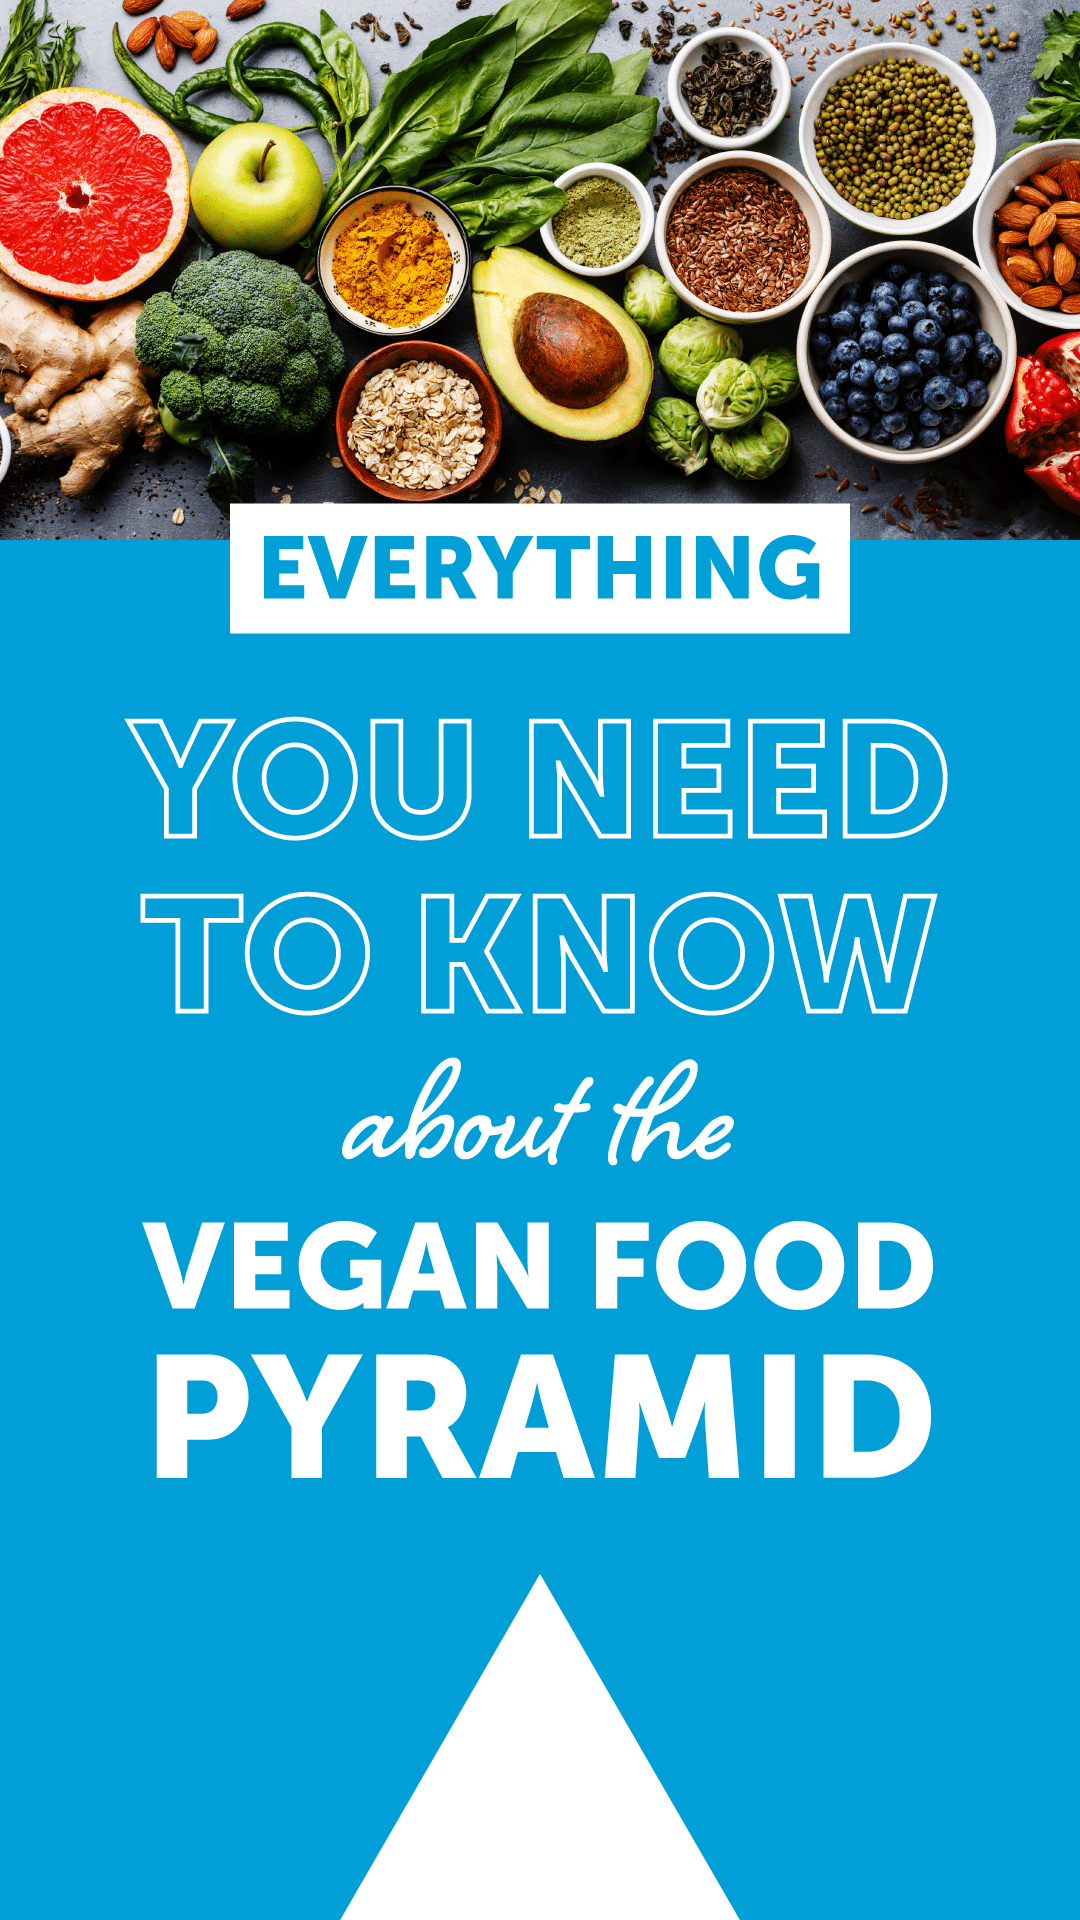 Everything You Need to Know About the Vegan Food Pyramid